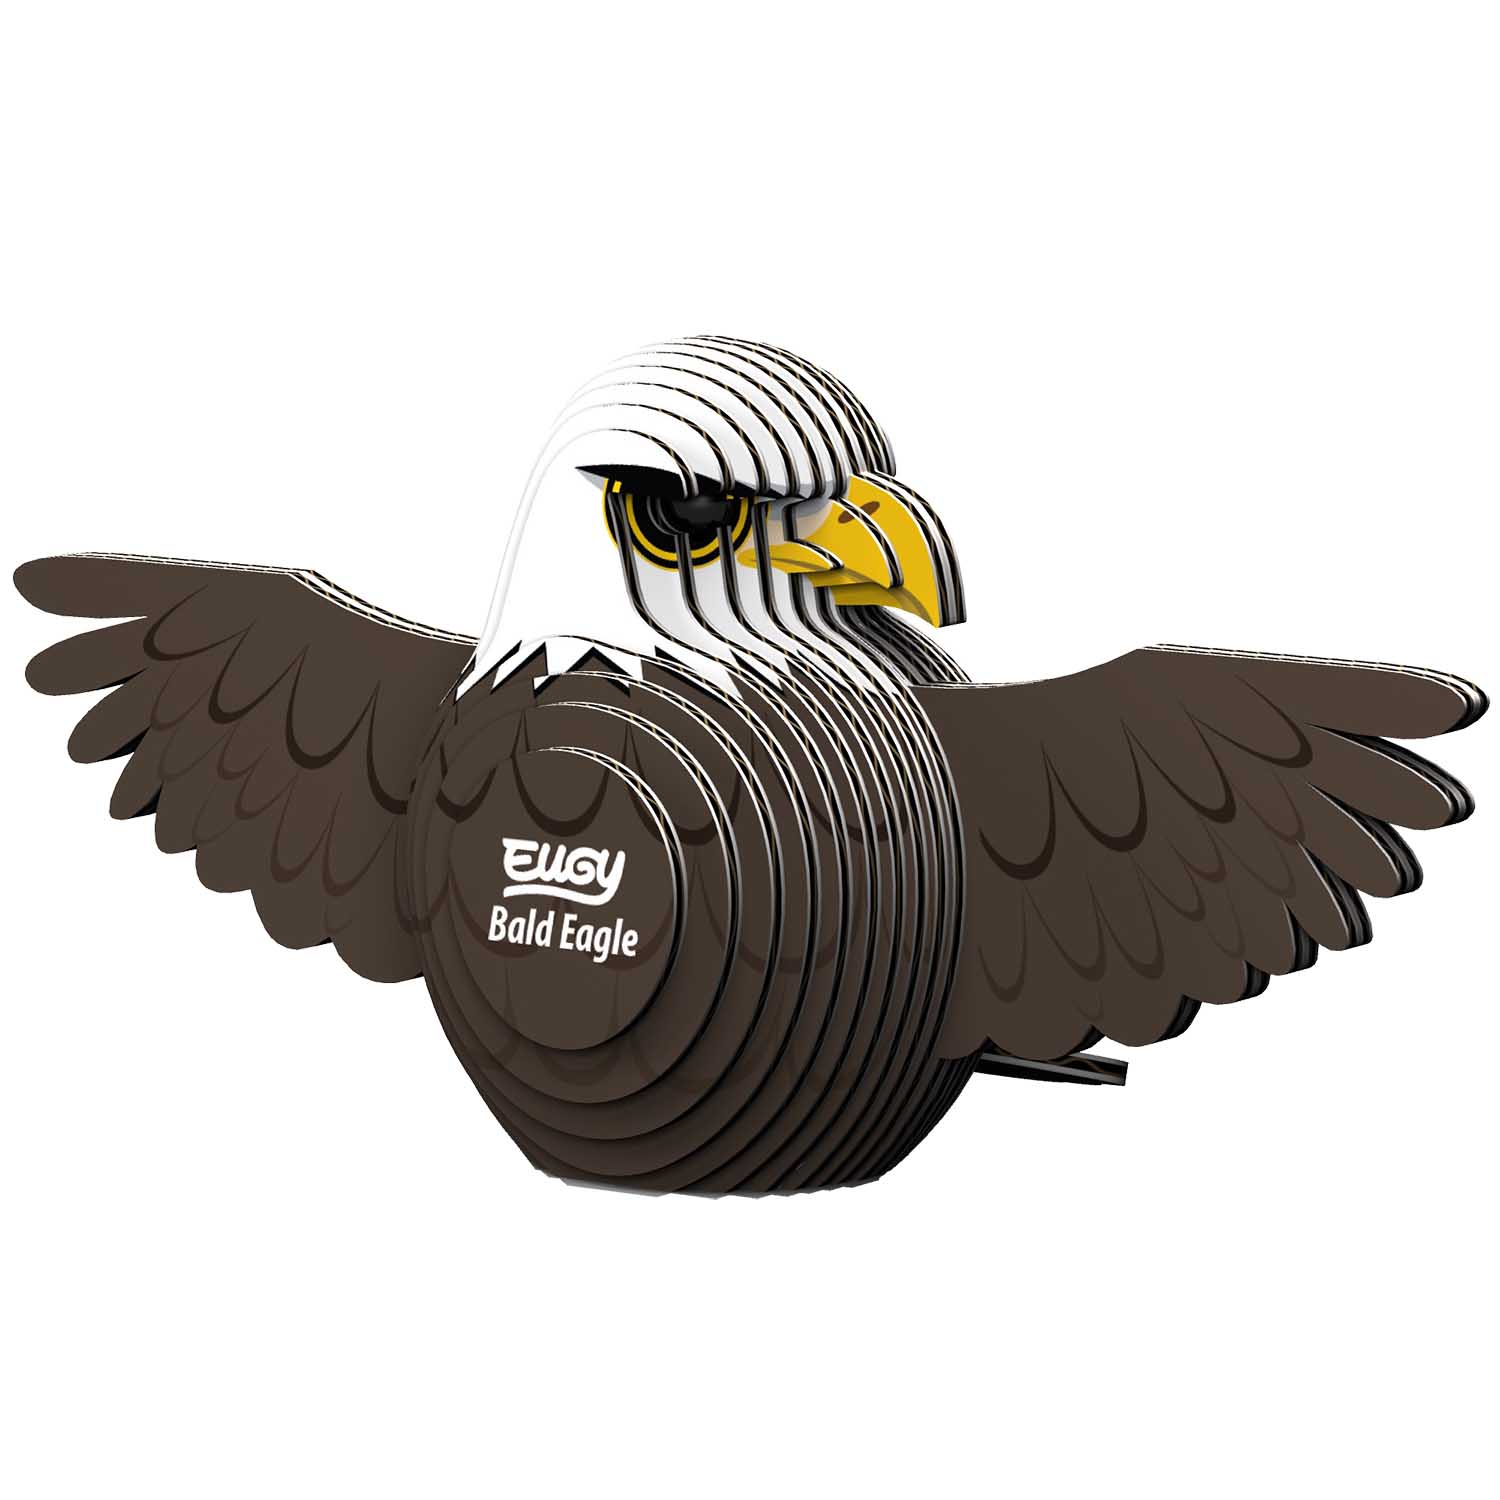 Bald Eagle Eugy Eagles 3D Puzzle